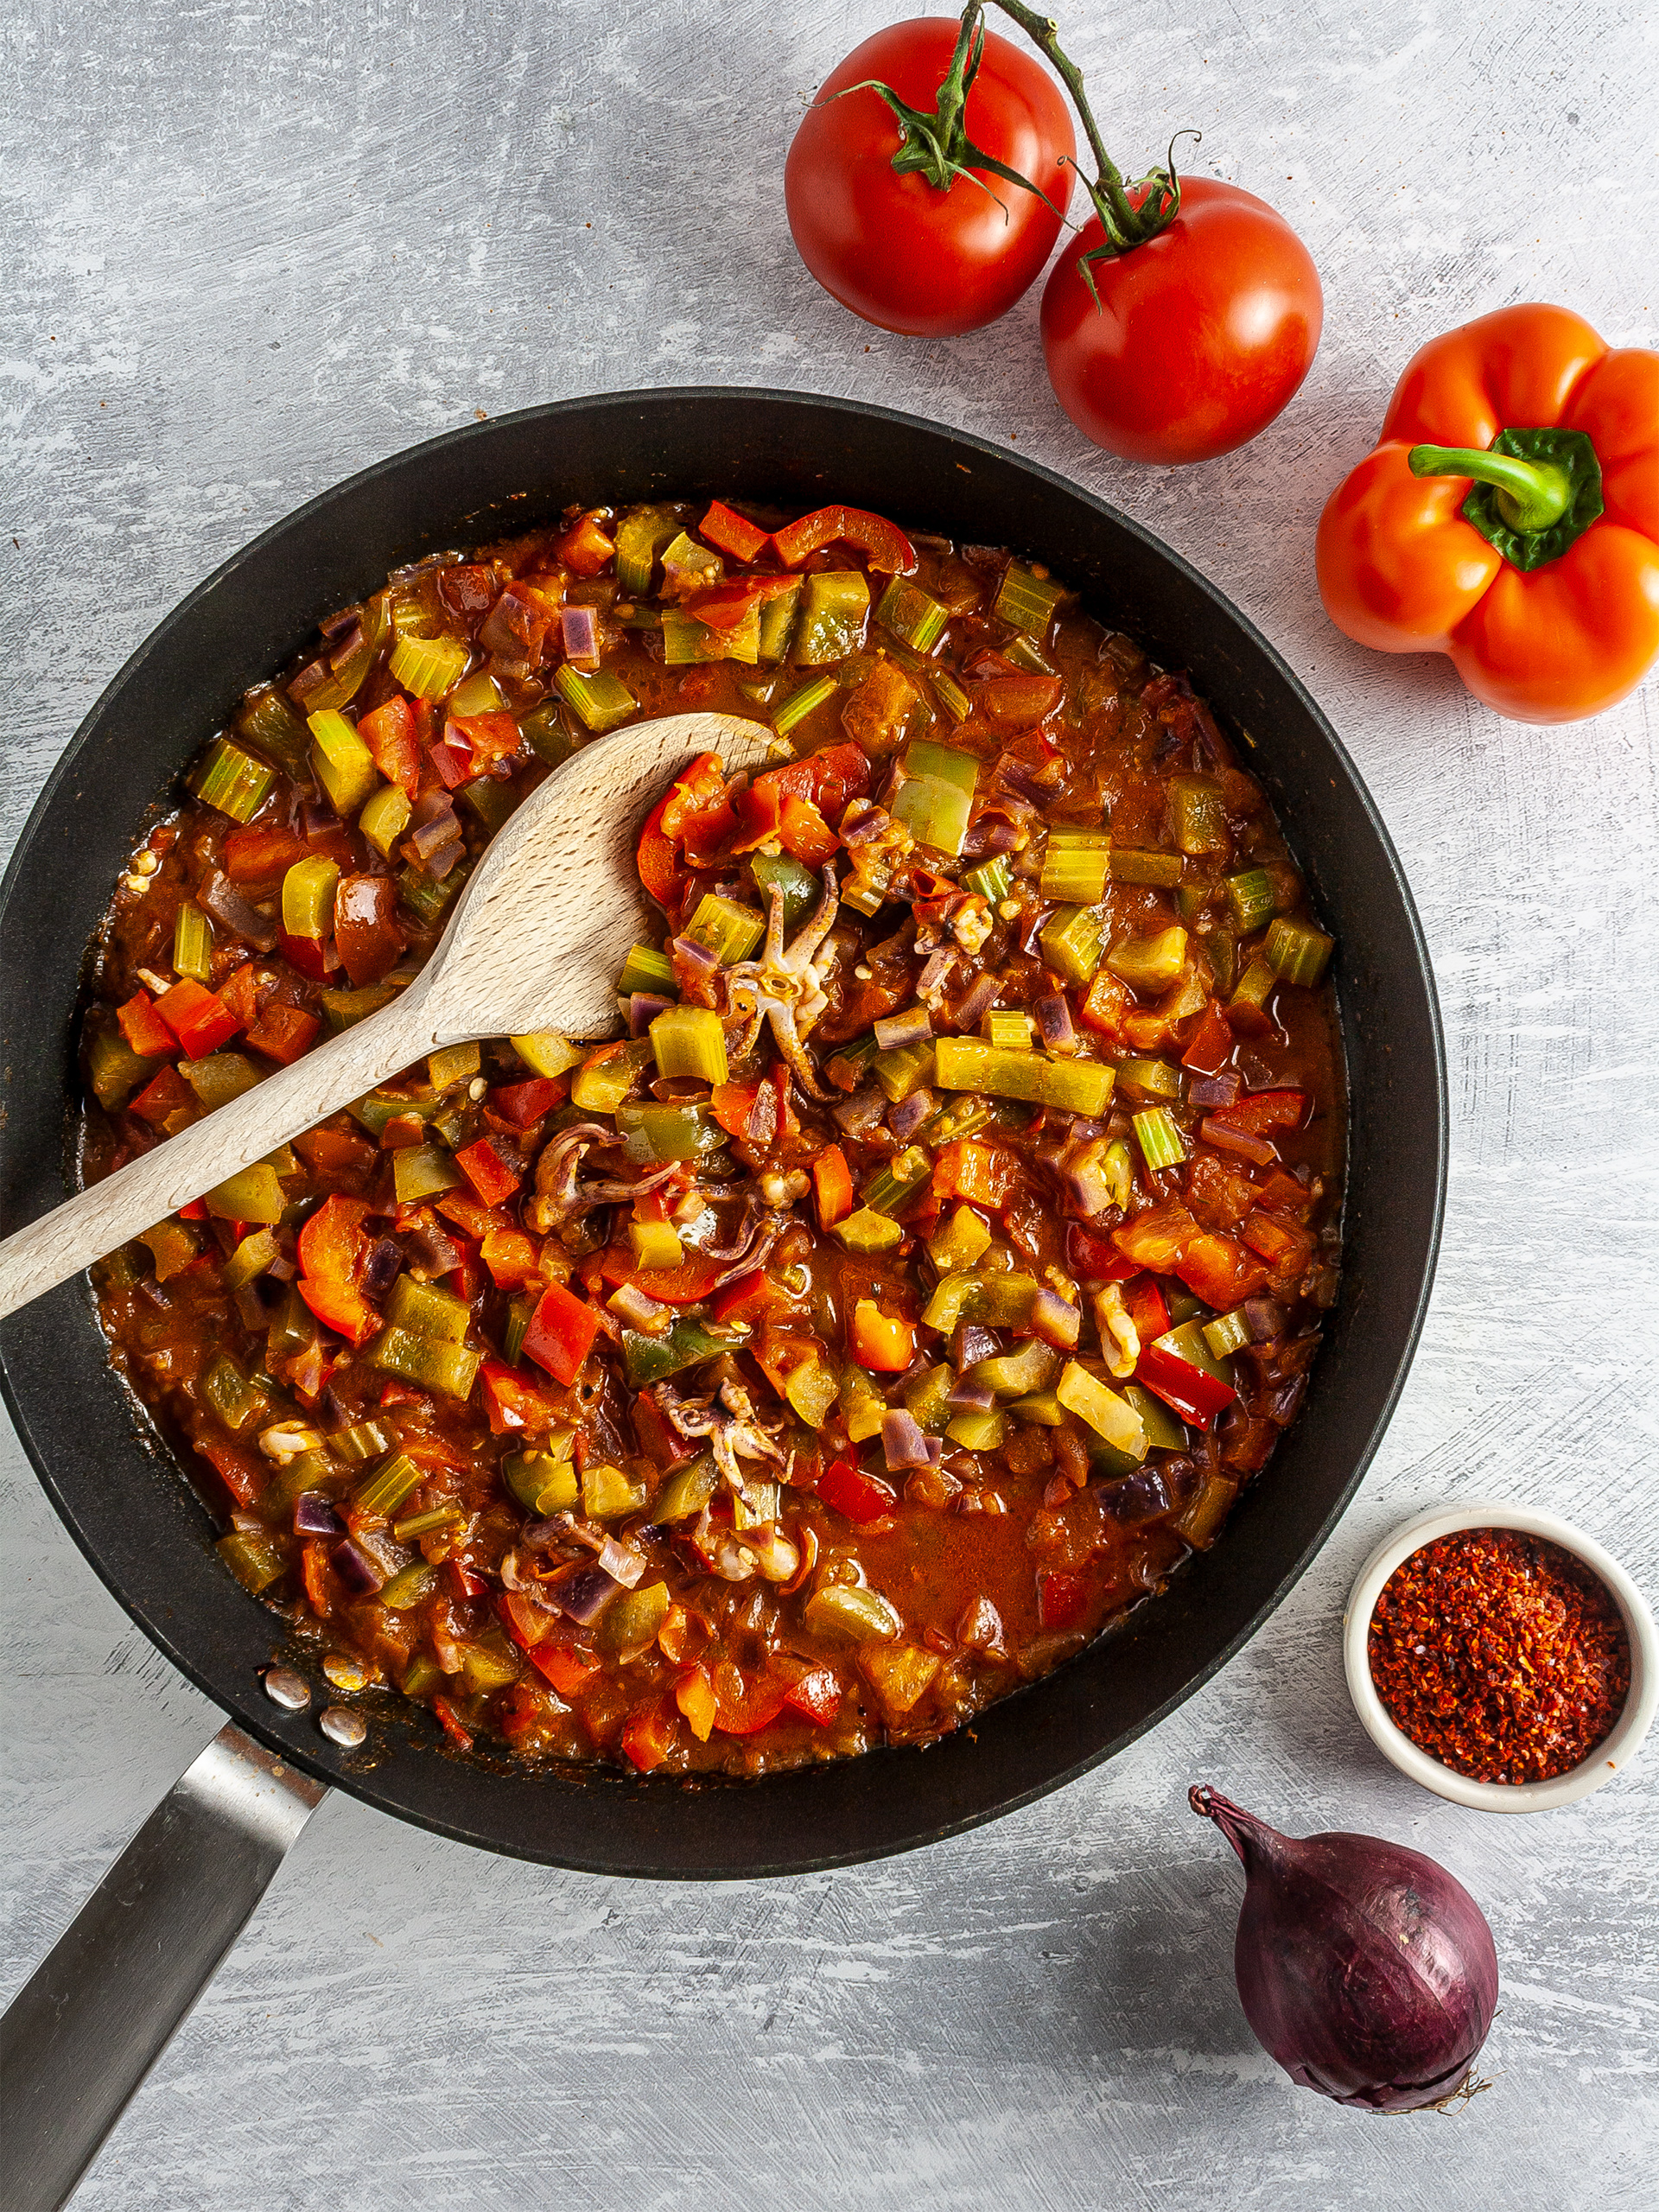 Cooked tomatoes, pepper, onions, and celery in a skillet